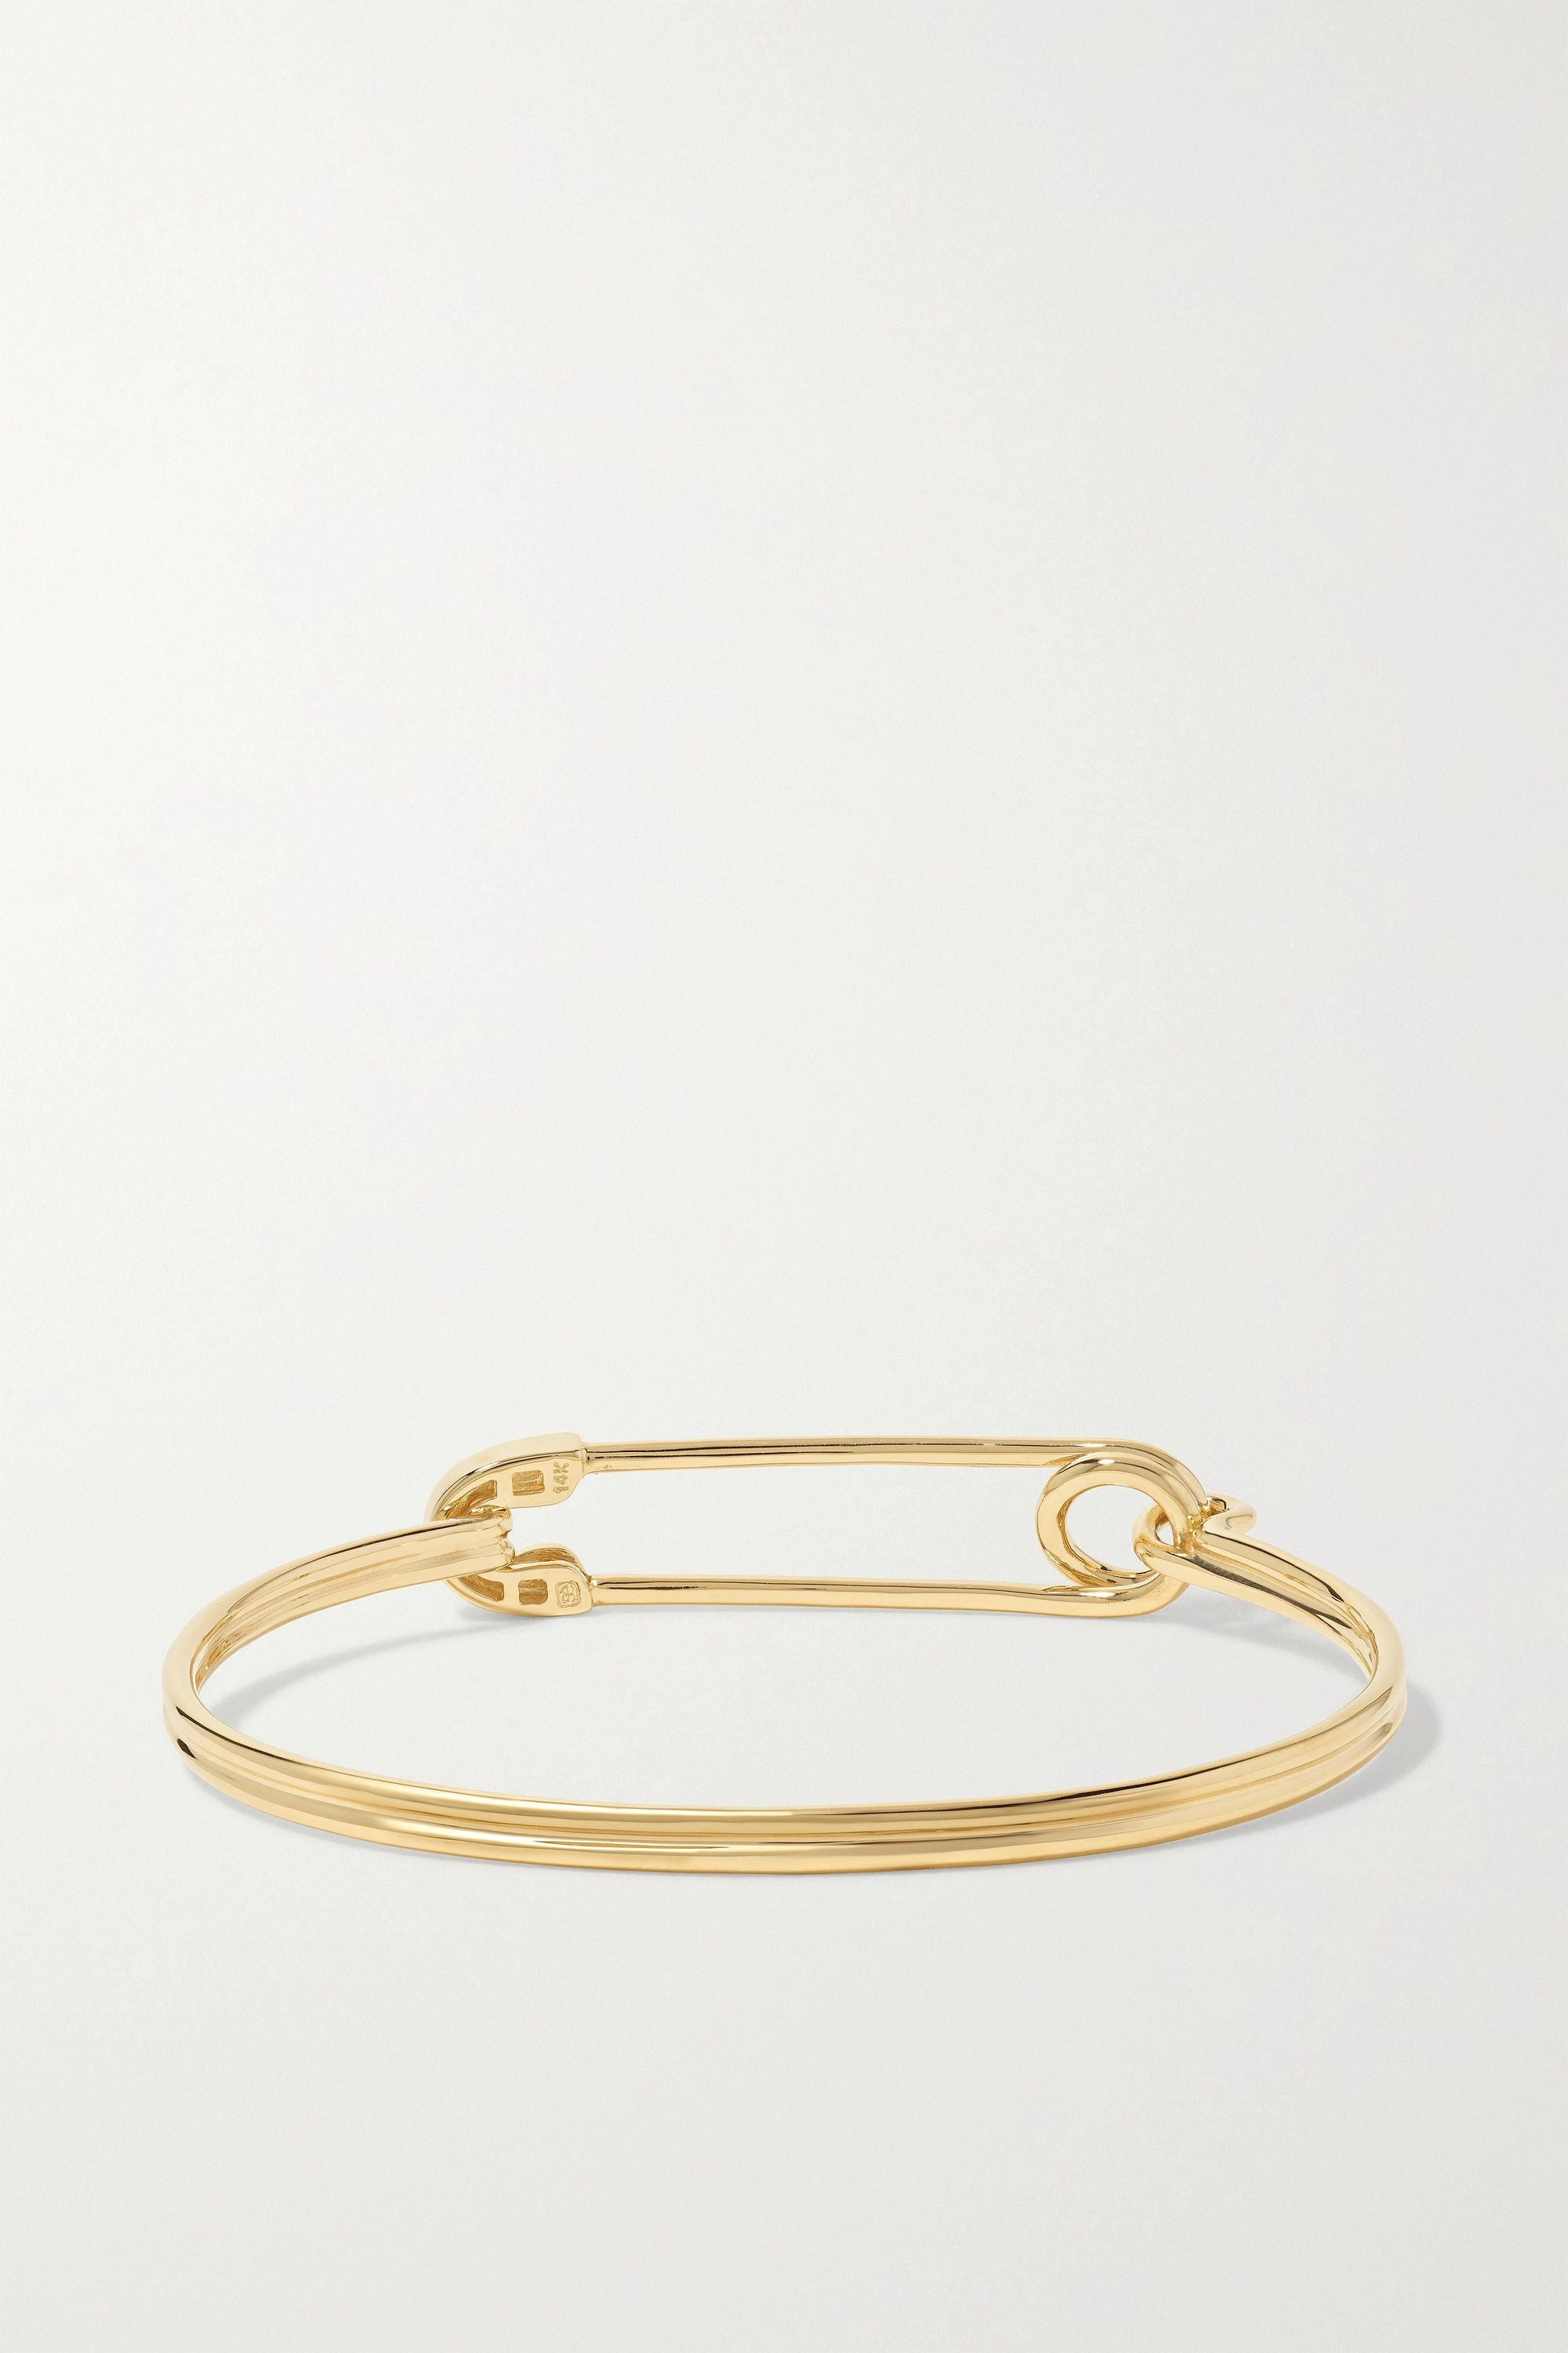 Sydney Evan Safety Pin 14-karat gold diamond bracelet